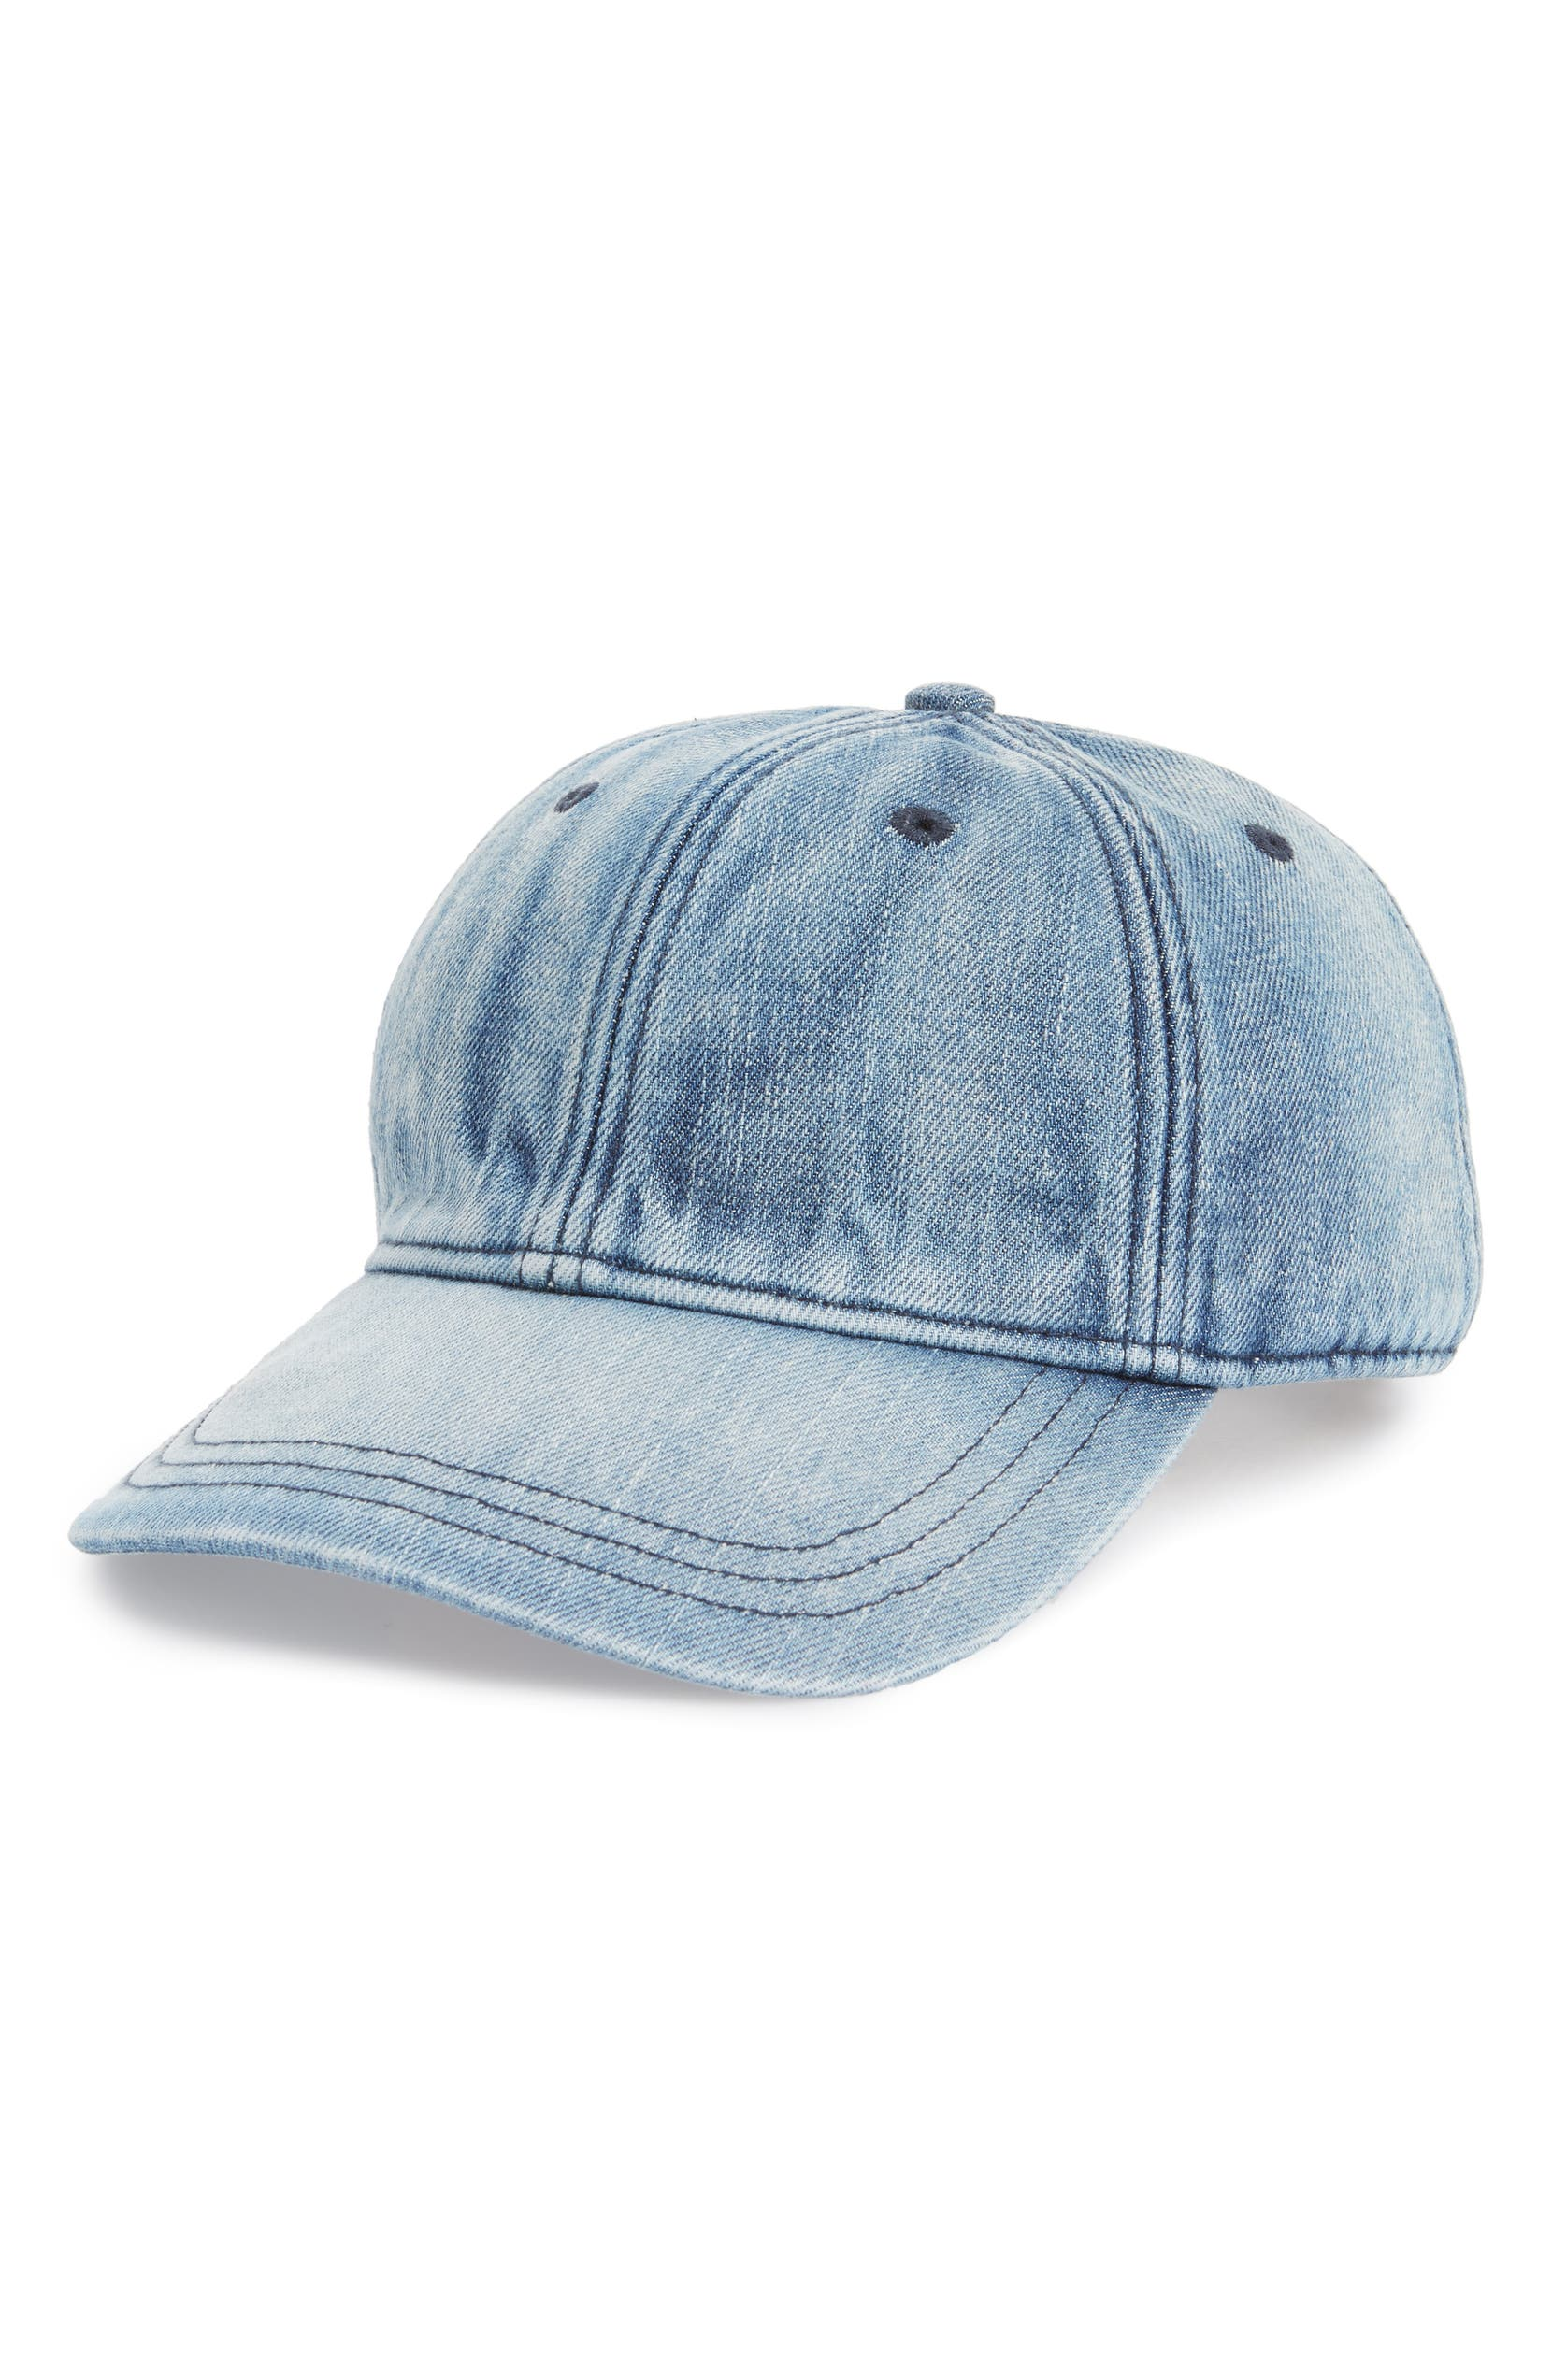 Madewell Faded Denim Baseball Cap  9fbb0fc5ede